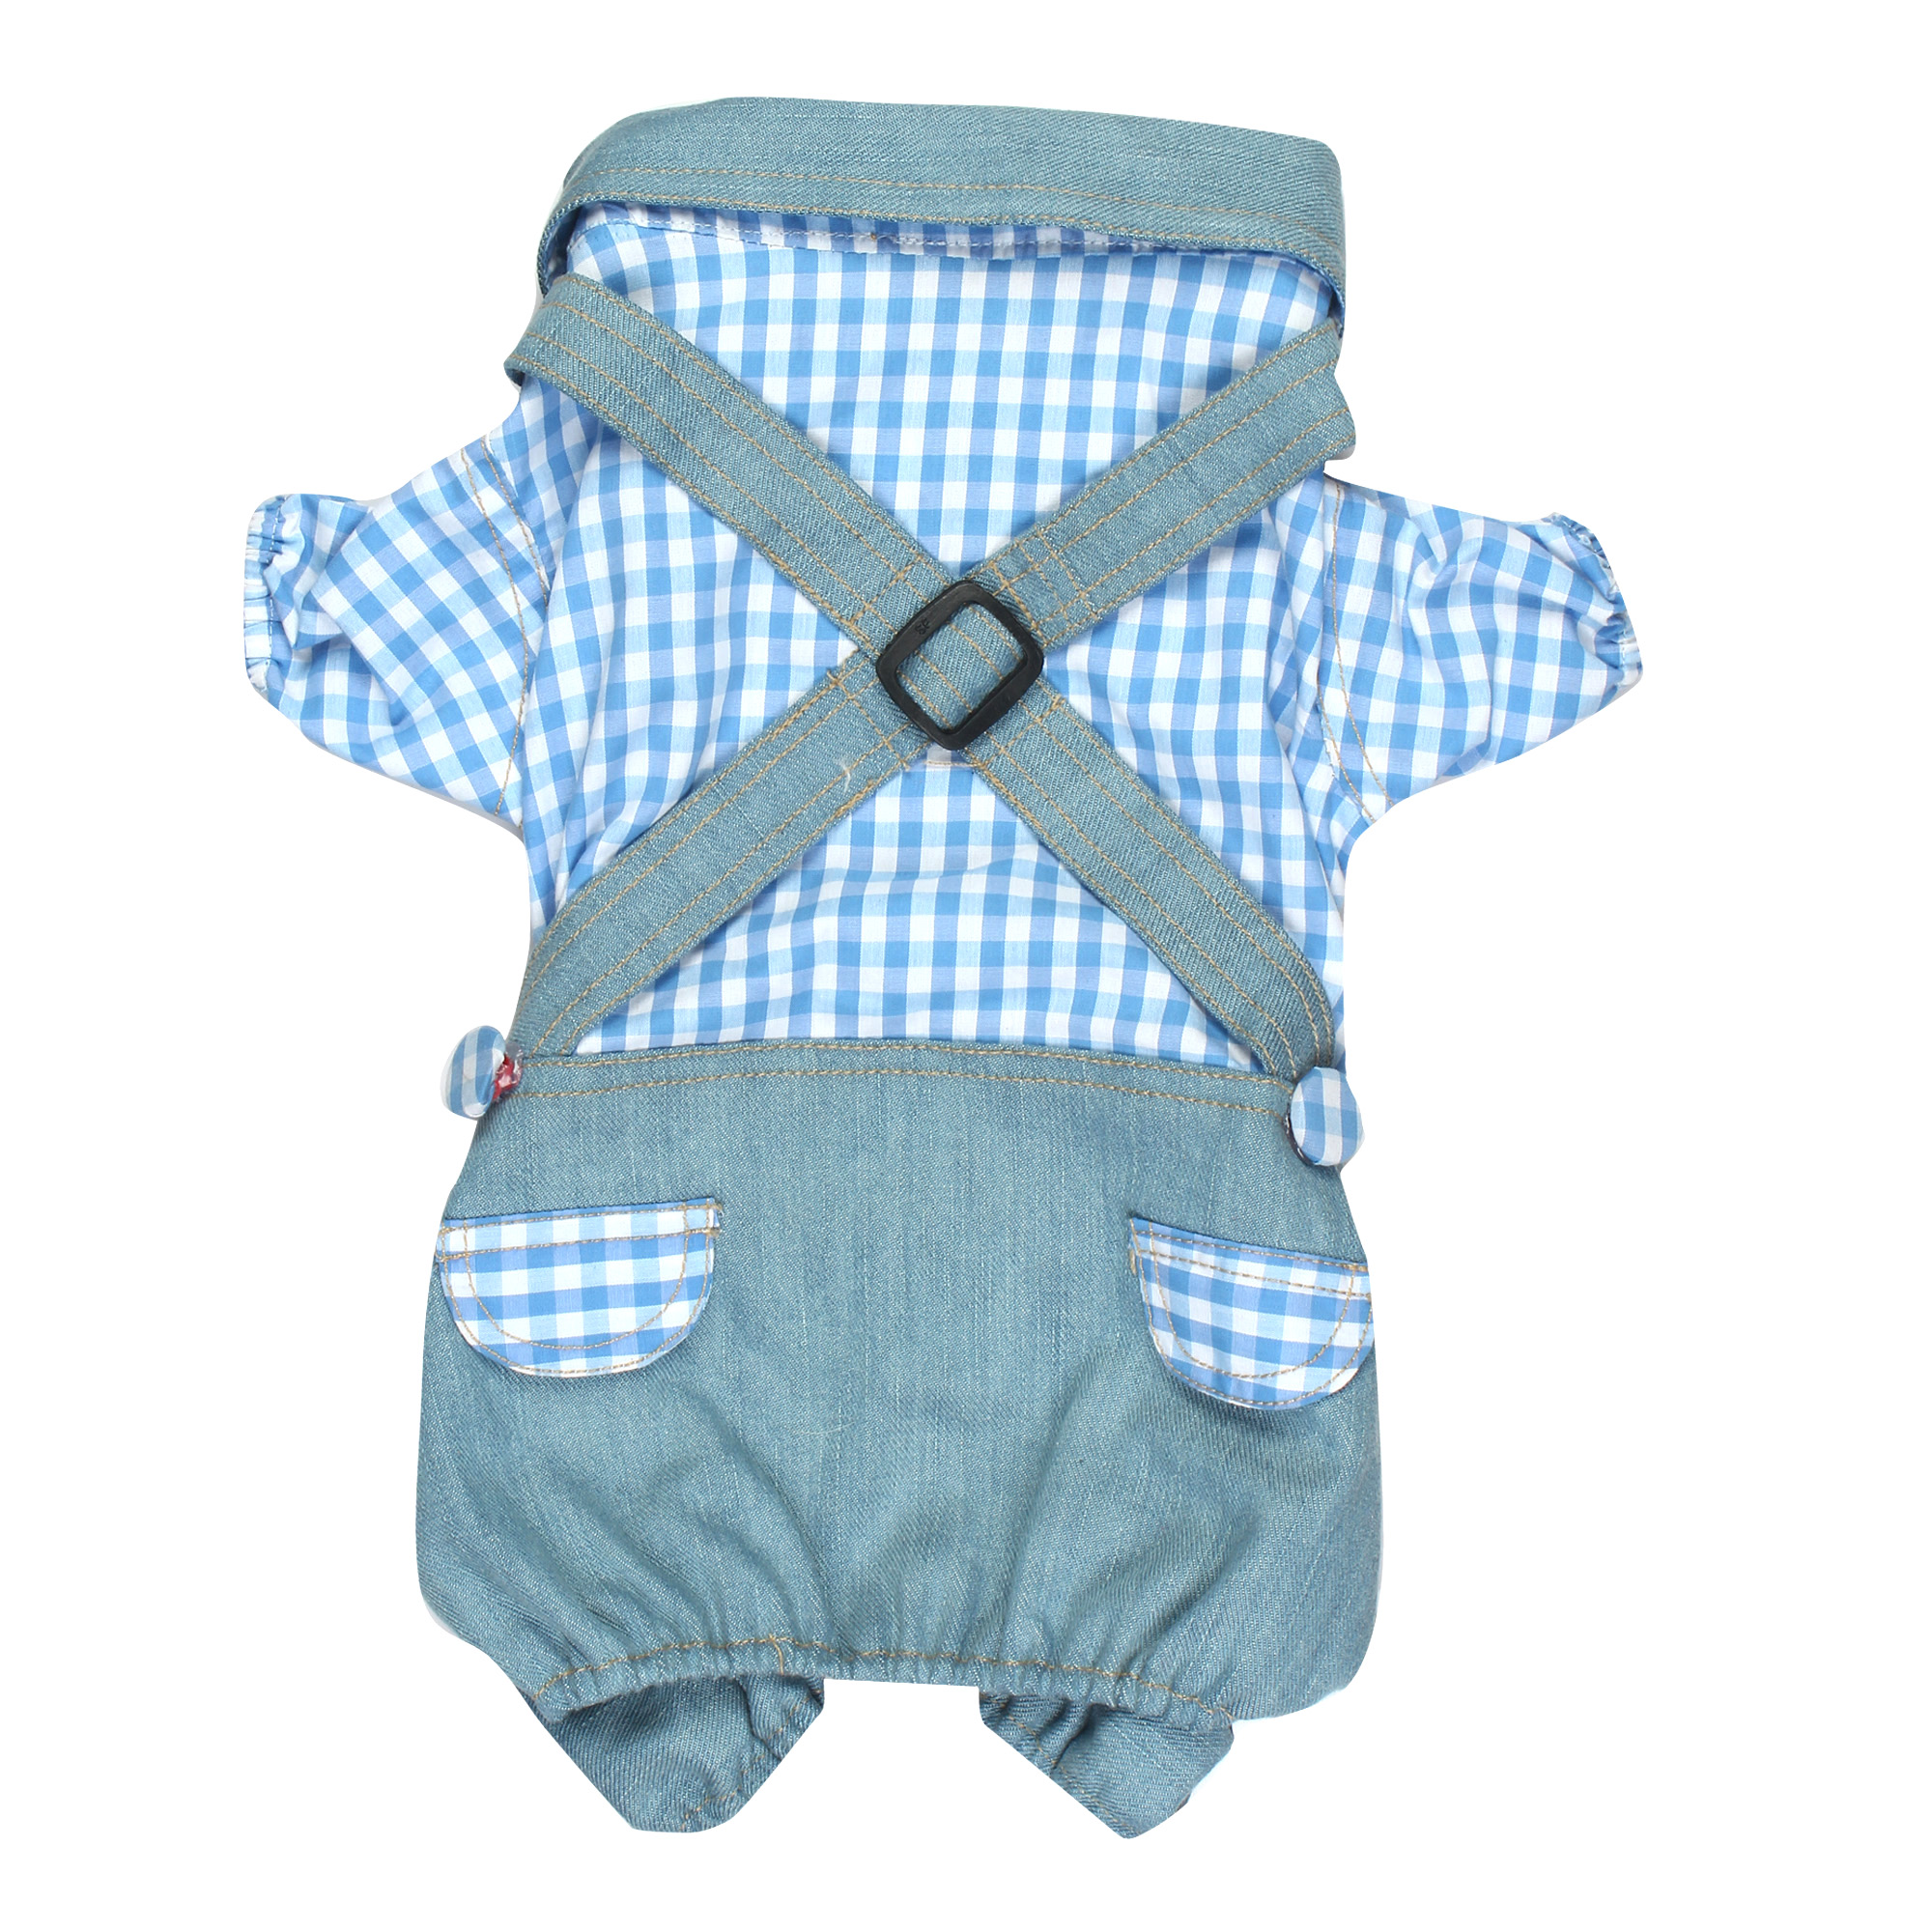 Douge couture cool Outfits blue white check Plaid Shirts Overalls Pants Pet Clothes for Dog Cat